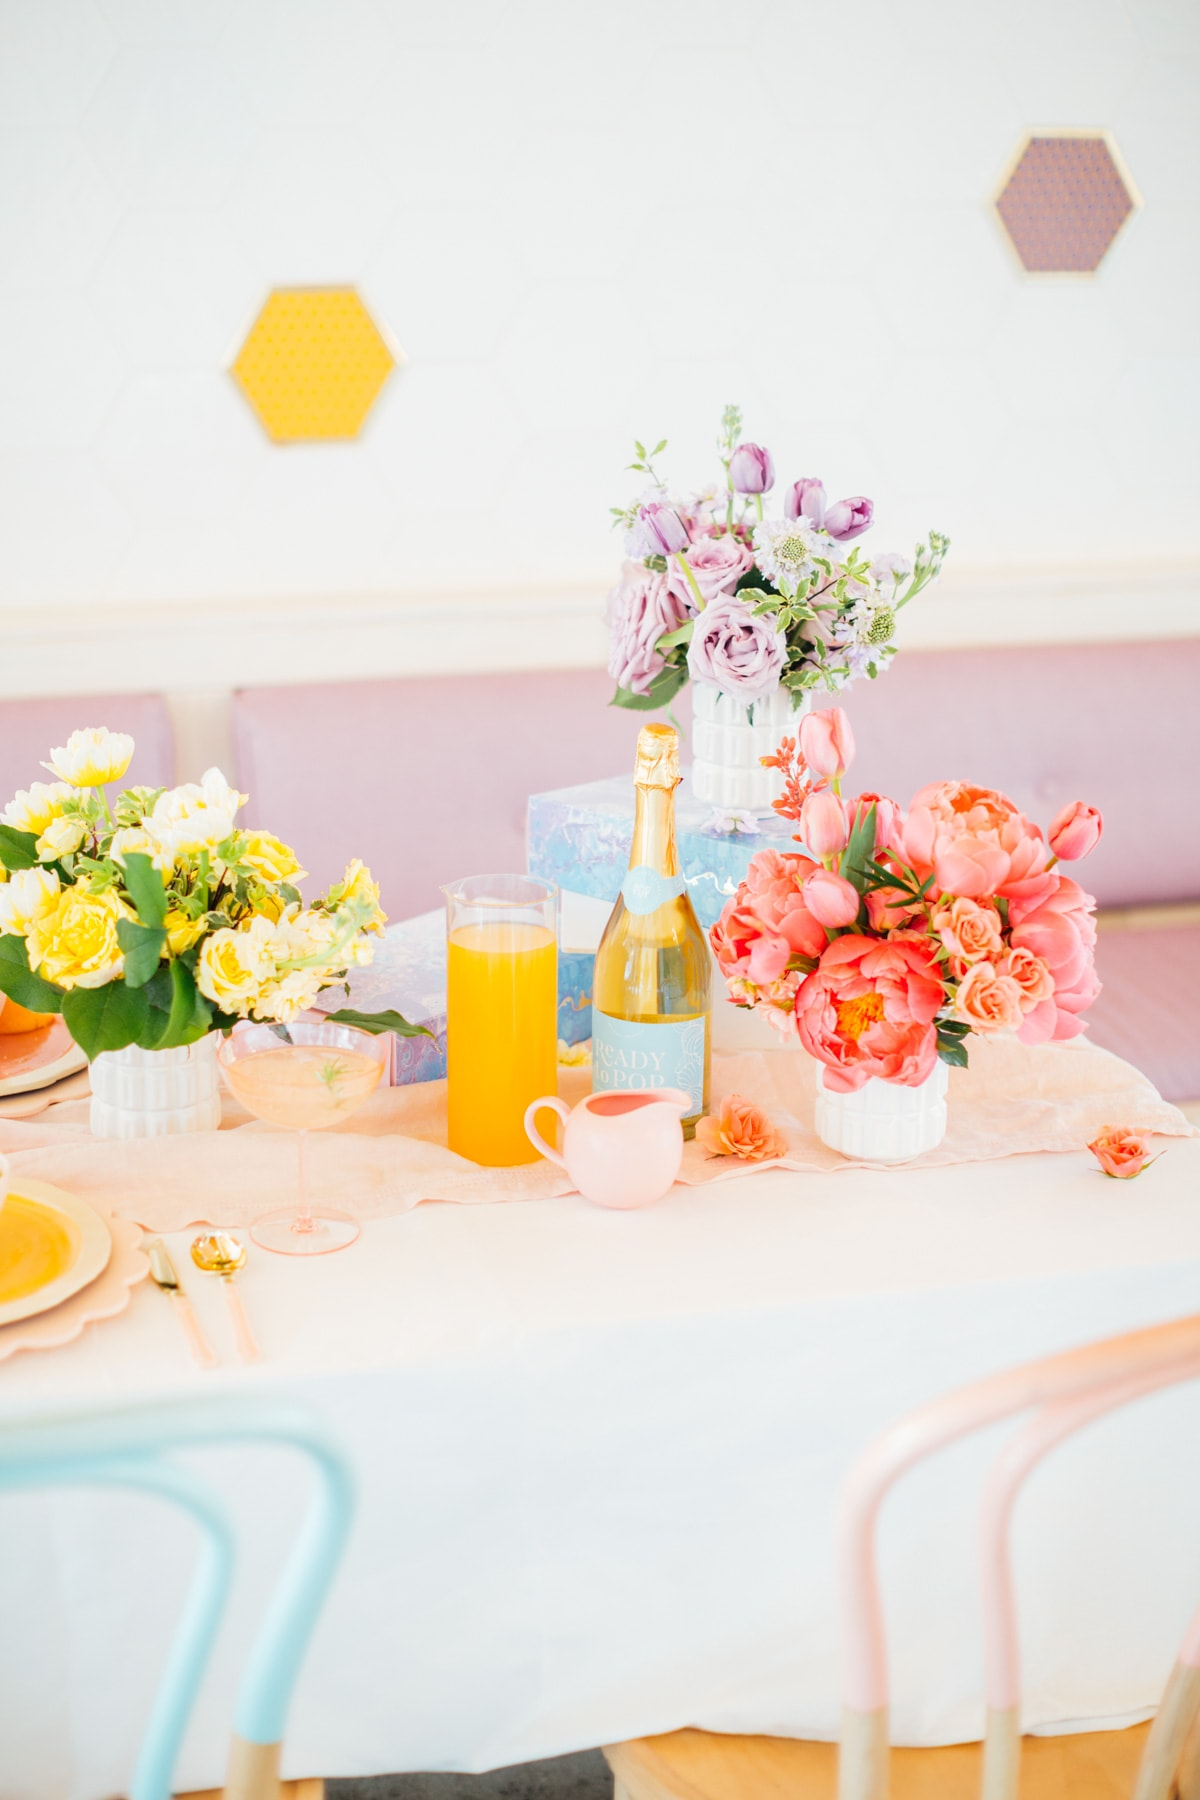 Ready to Pop Champagne - A Perfectly Pastel Easter Table Idea by top Houston lifestyle blogger Ashley Rose of Sugar & Cloth #diy #tablescape #ideas #easter #pastel #party #decorations #brunch #bridalshower #bridal #shower #baby